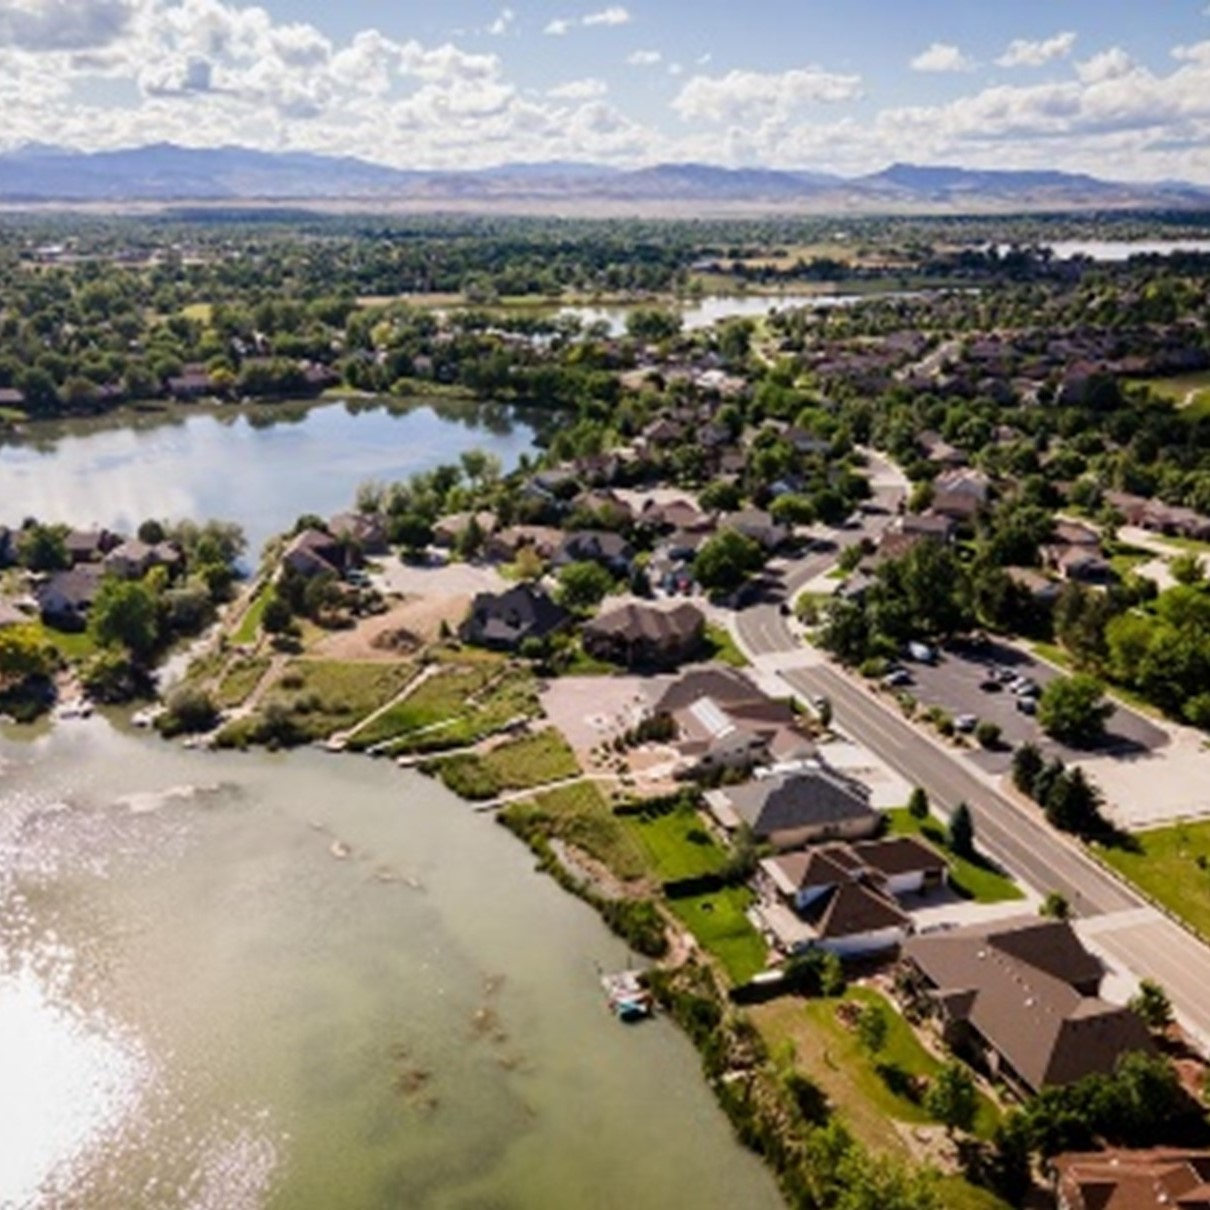 Aerial of the City of Loveland